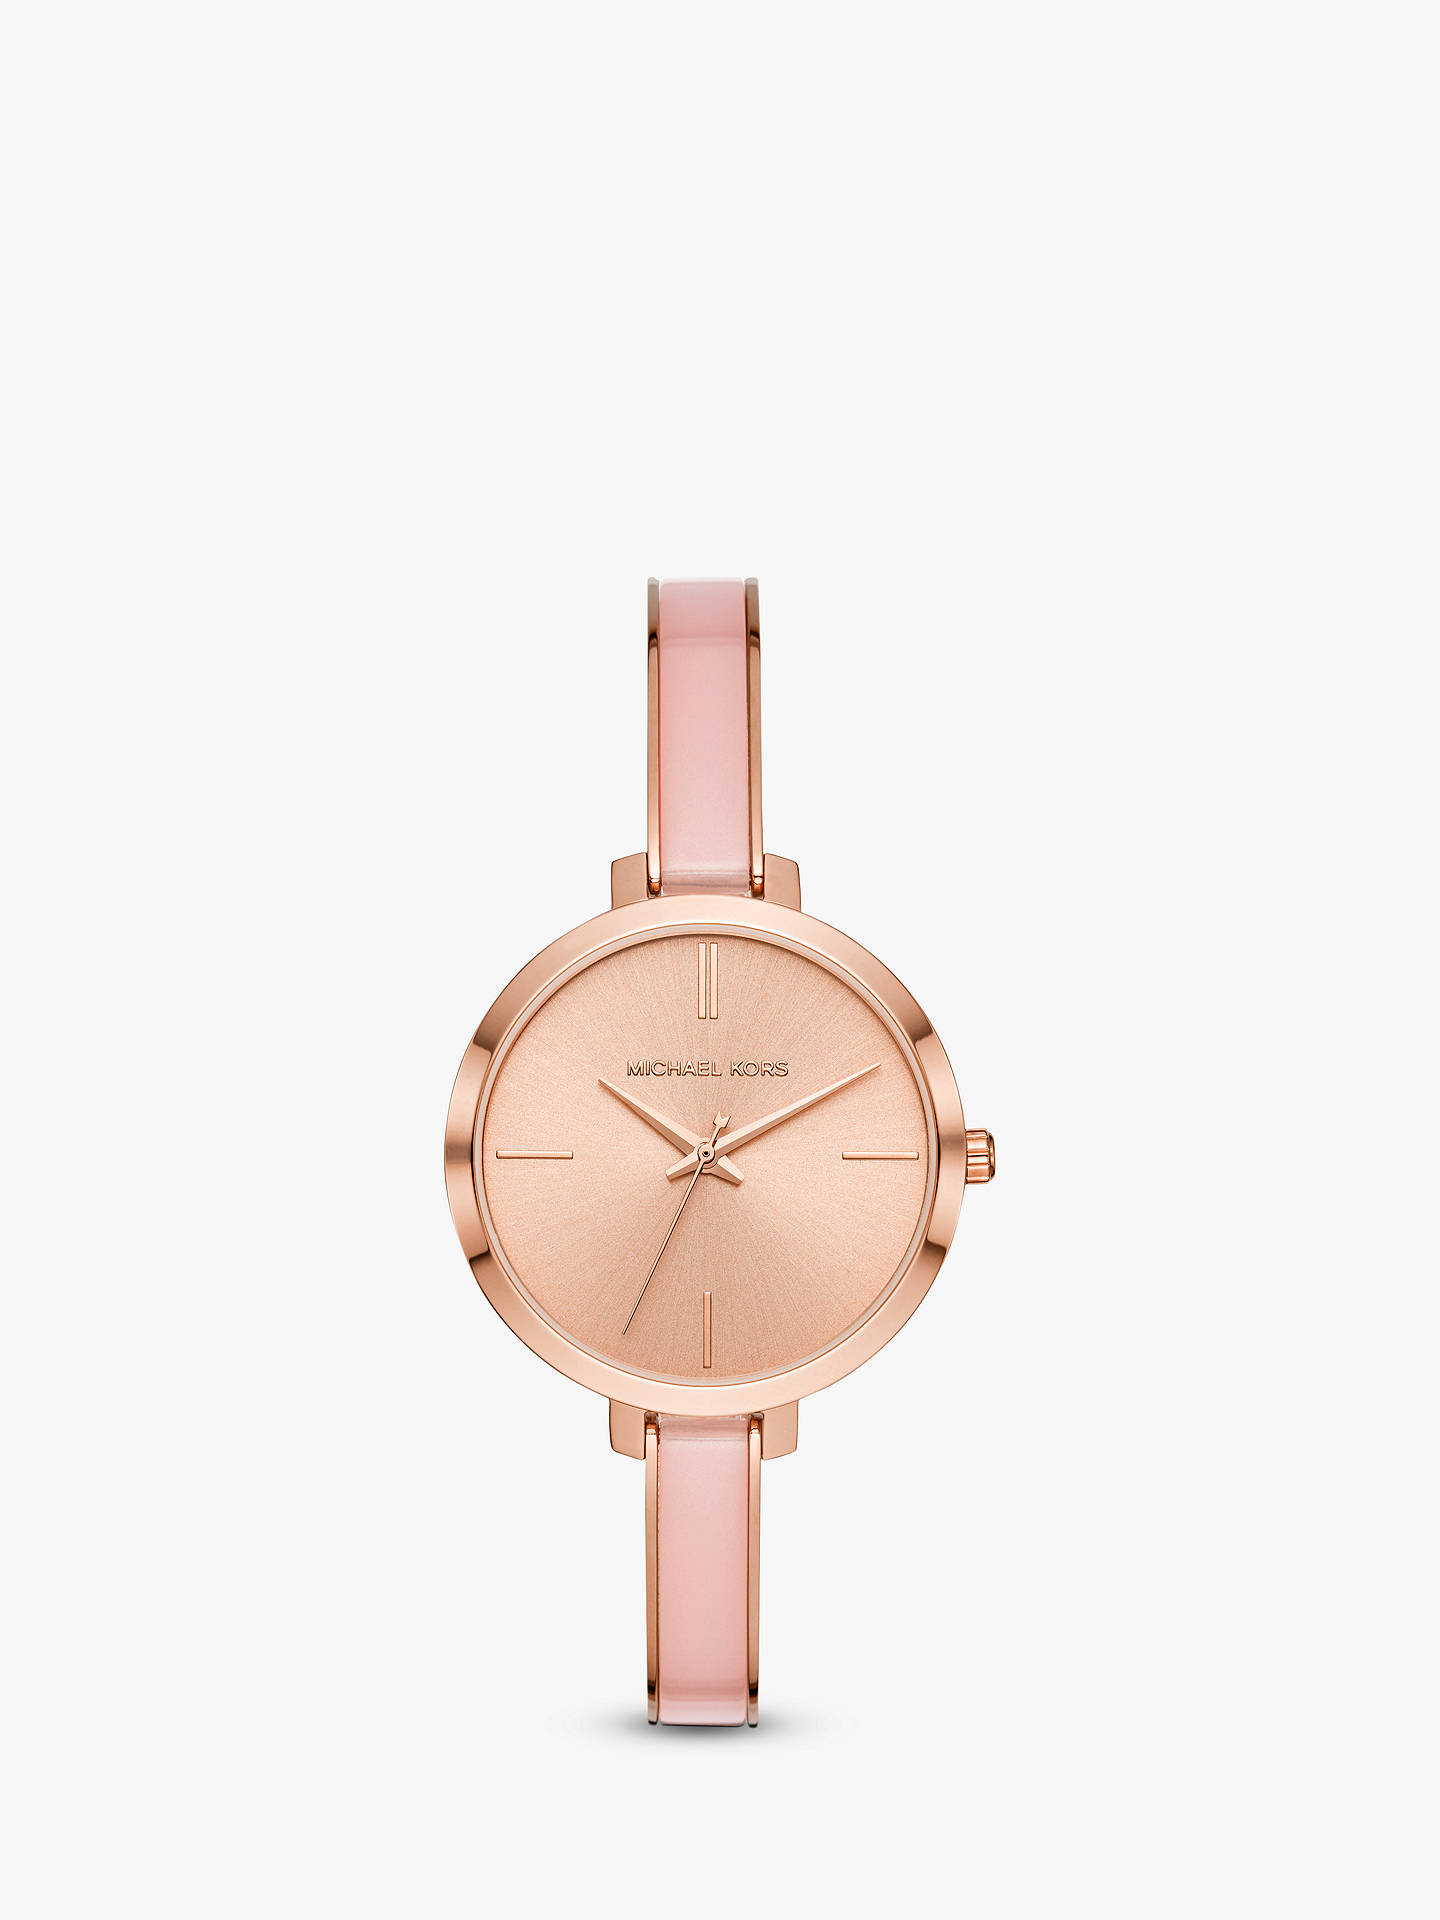 Michael Kors Women S Jaryn Bangle Strap Watch At John Lewis Partners